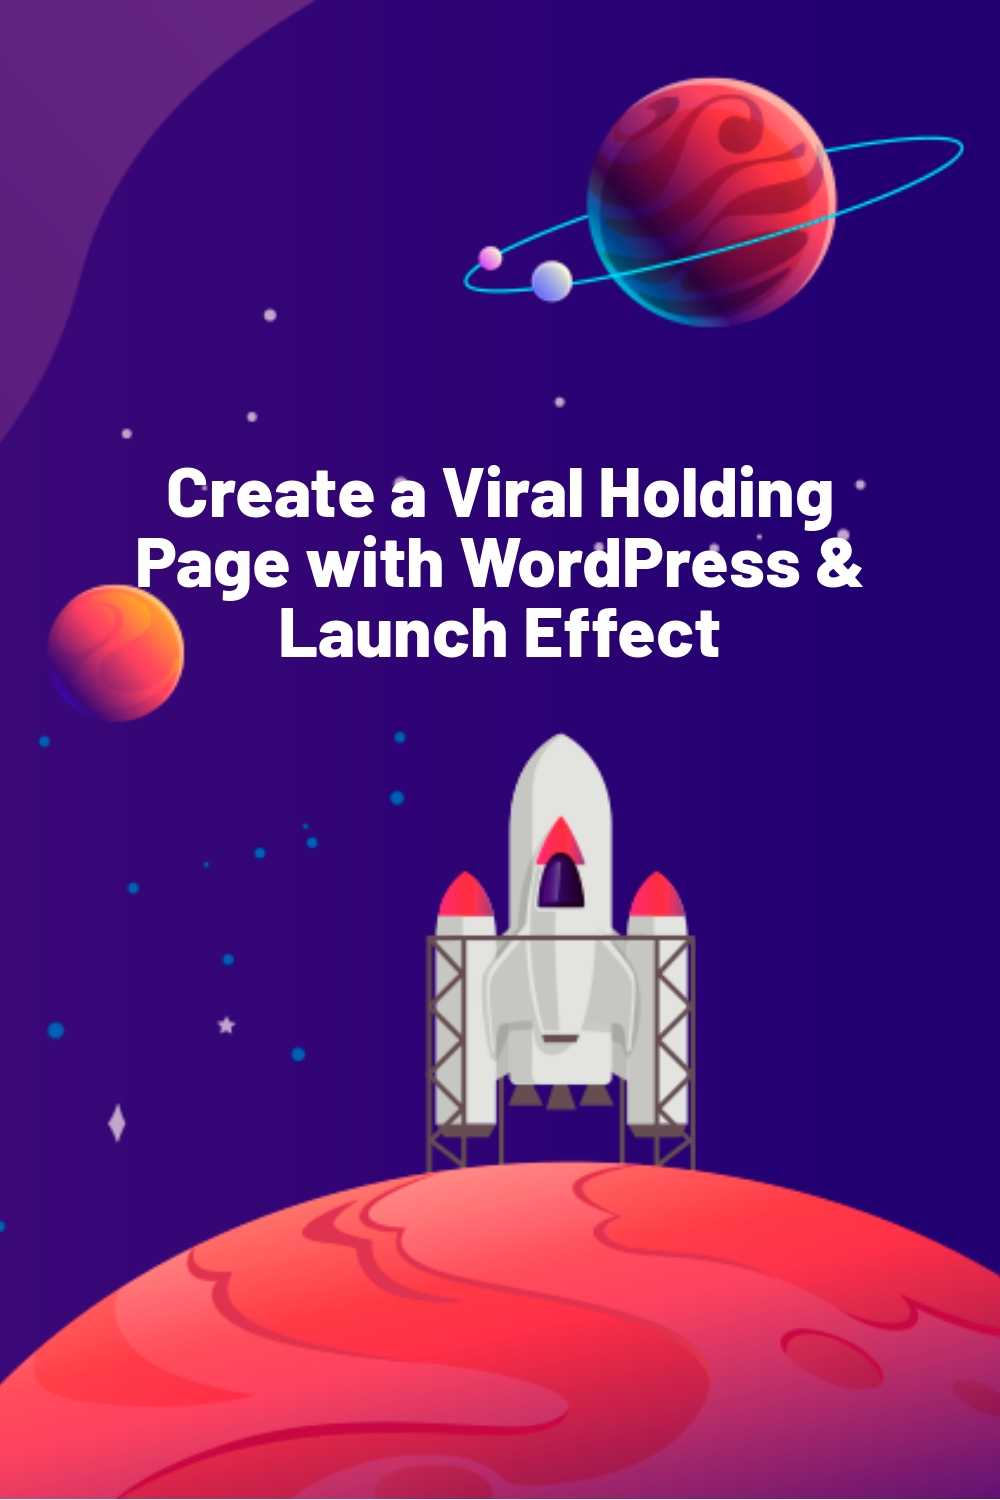 Create a Viral Holding Page with WordPress & Launch Effect